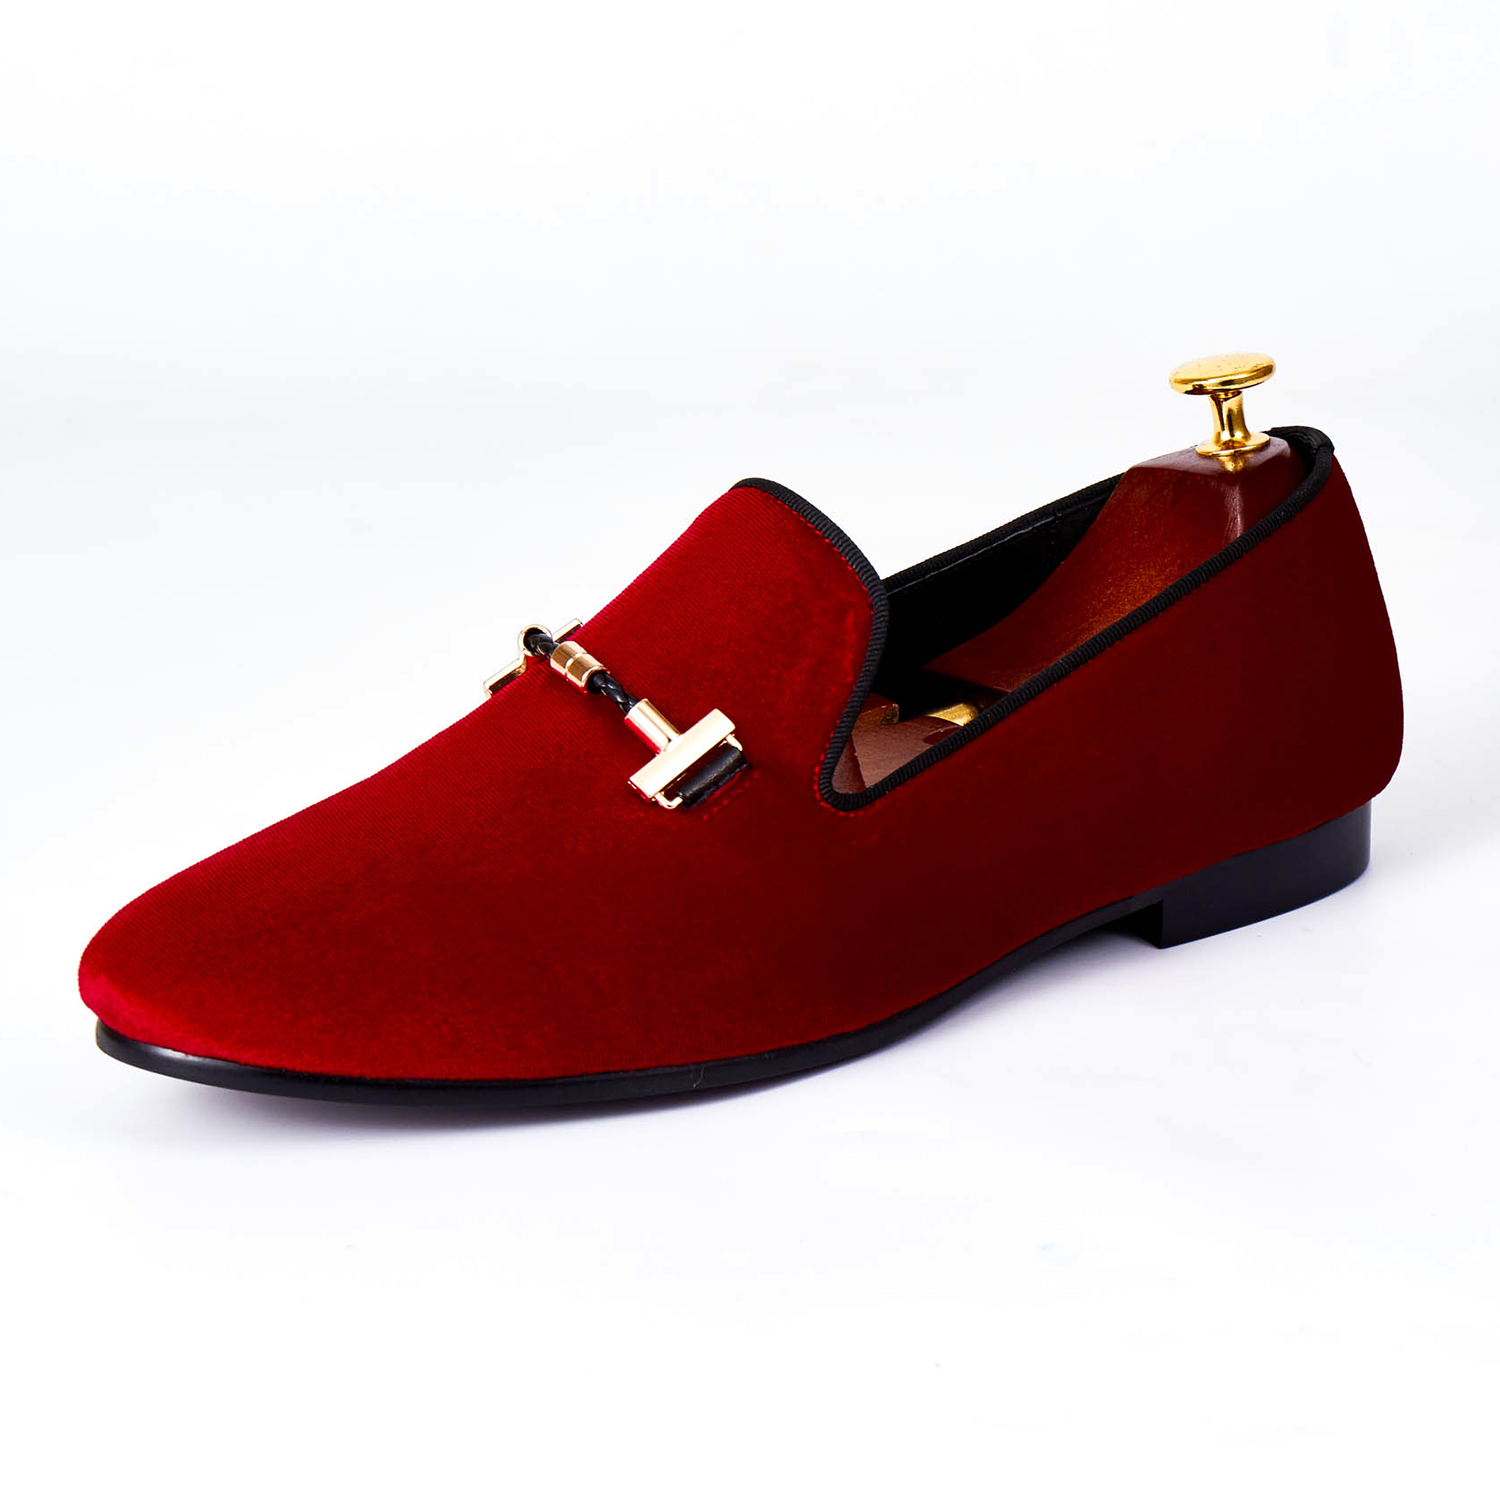 Harpelunde Hot Sell Men Shoes Buckle Strap Formal Shoes Red Velvet Loafers Size 7-14 harpelunde buckle men wedding shoes red velvet dress loafers strap flats shoes size 7 14